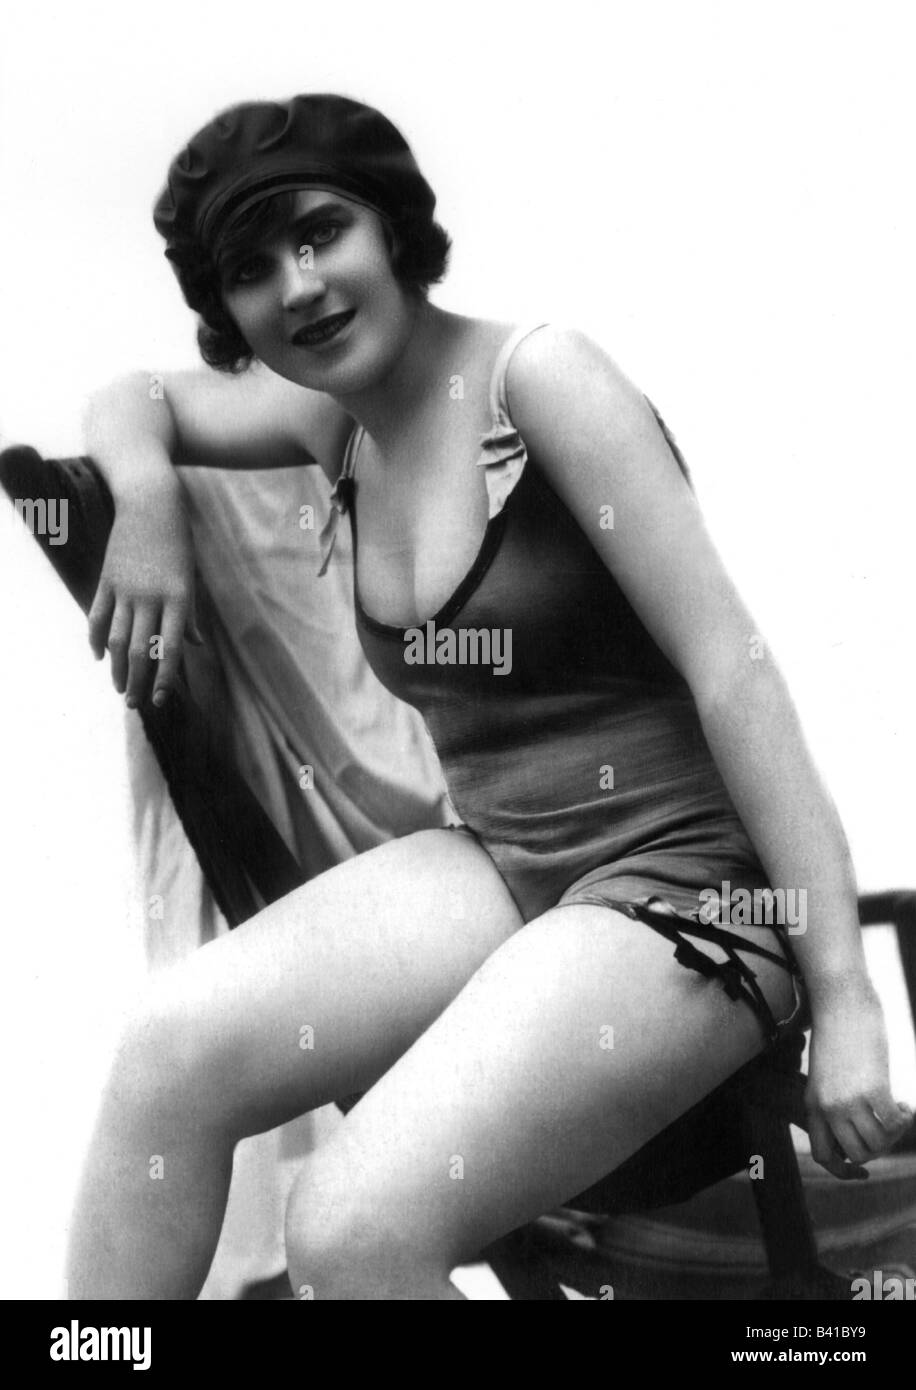 bathing, swimsuit, young woman, wearing swimsuit, half length, studio, 1920, Additional-Rights-Clearances-NA - Stock Image